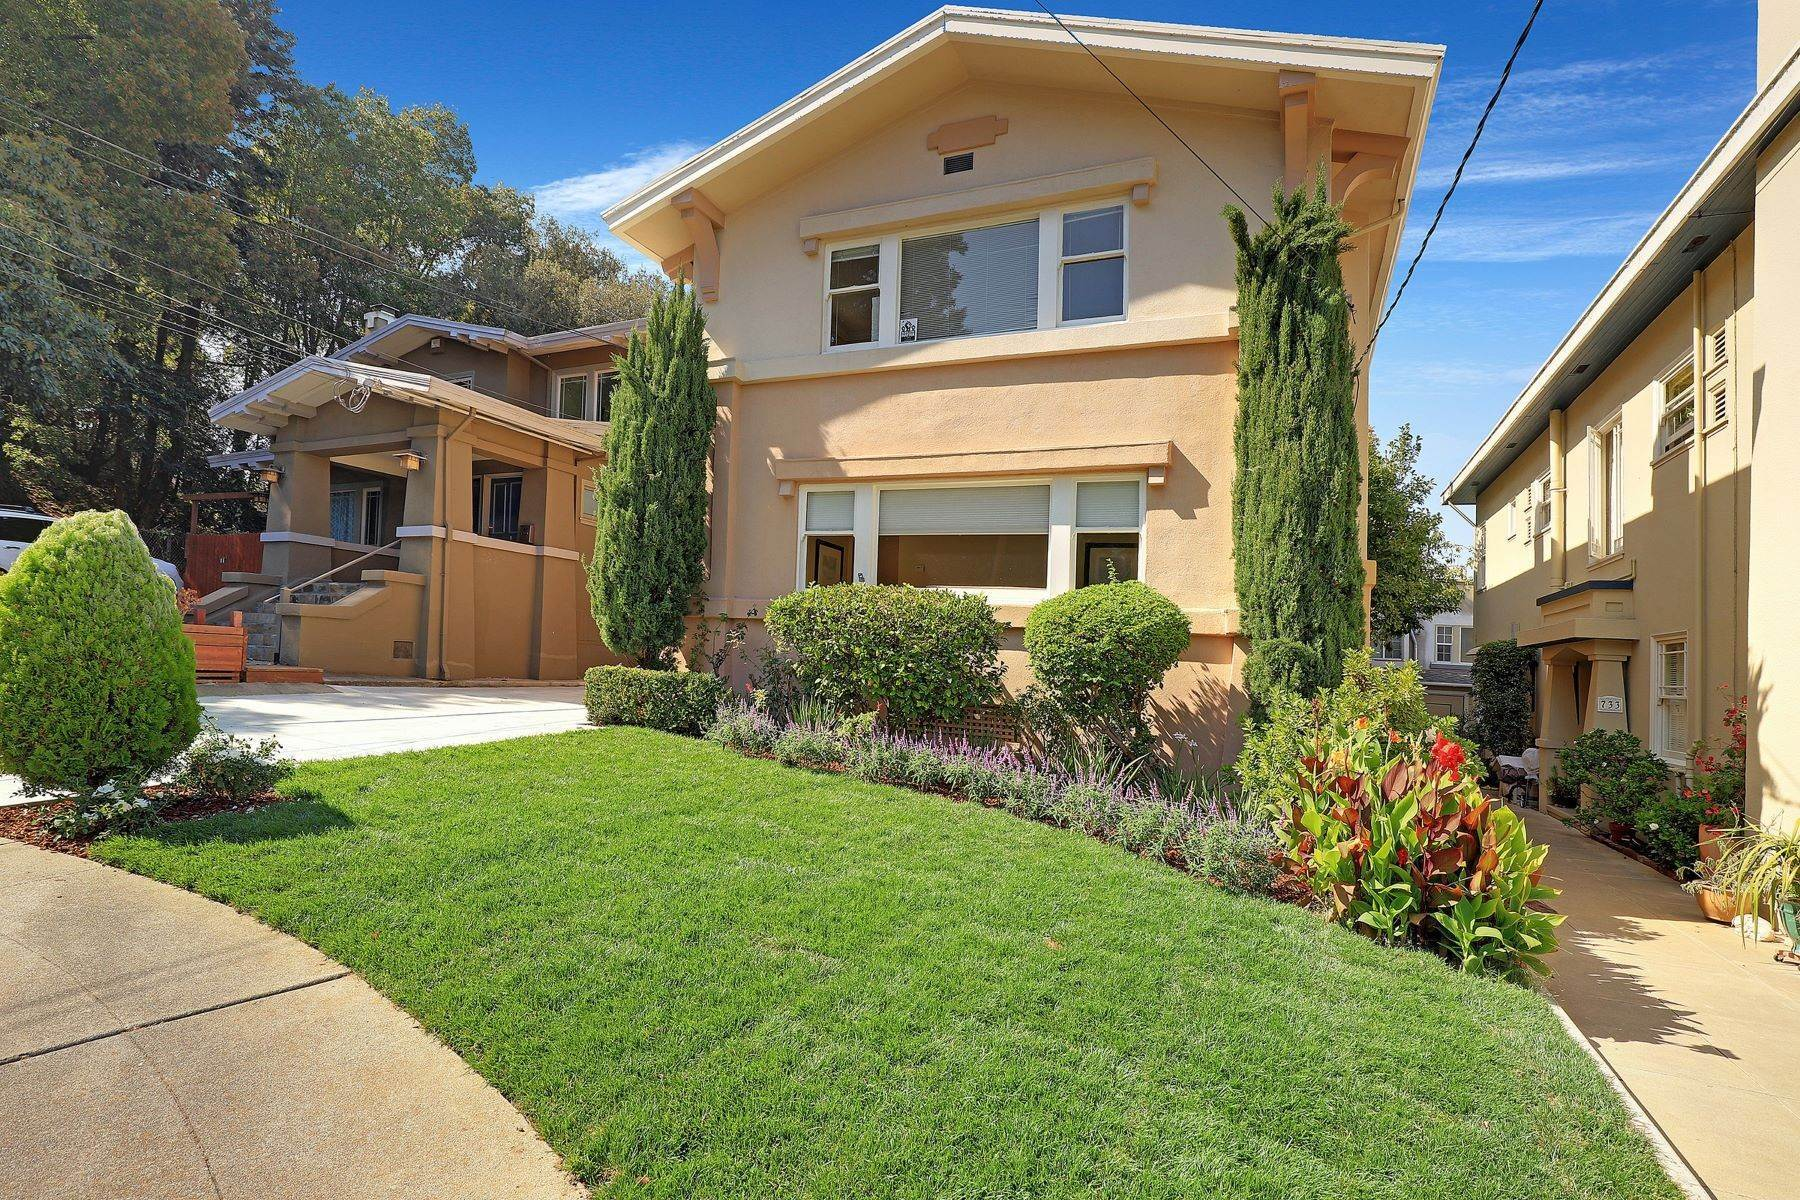 Multi-Family Homes for Sale at Inviting Sunlit Duplex 725 Haddon Place Oakland, California 94610 United States